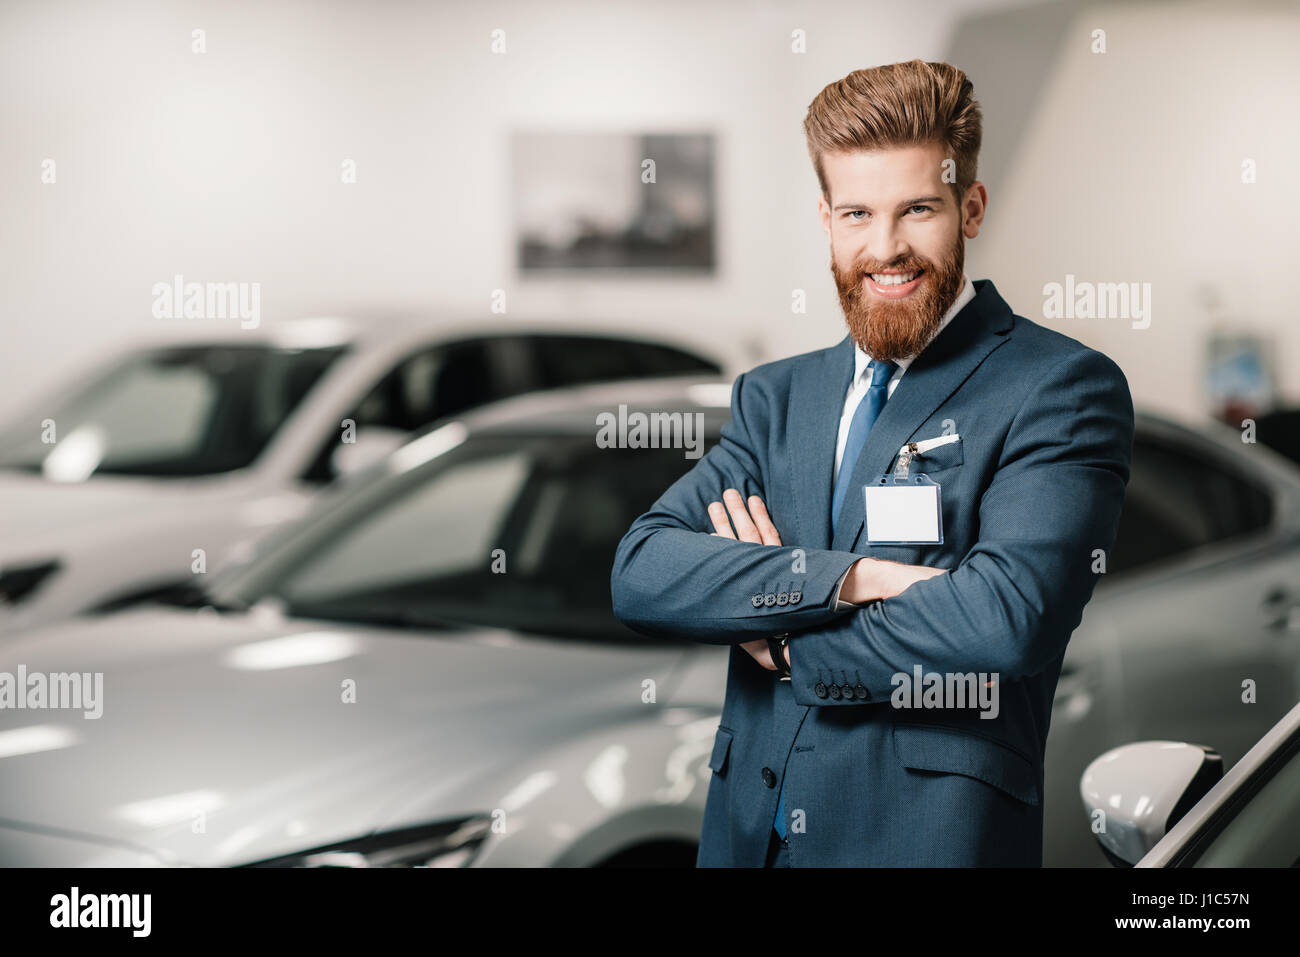 salesman in suit with crossed arms posing and looking at camera in dealership salon - Stock Image